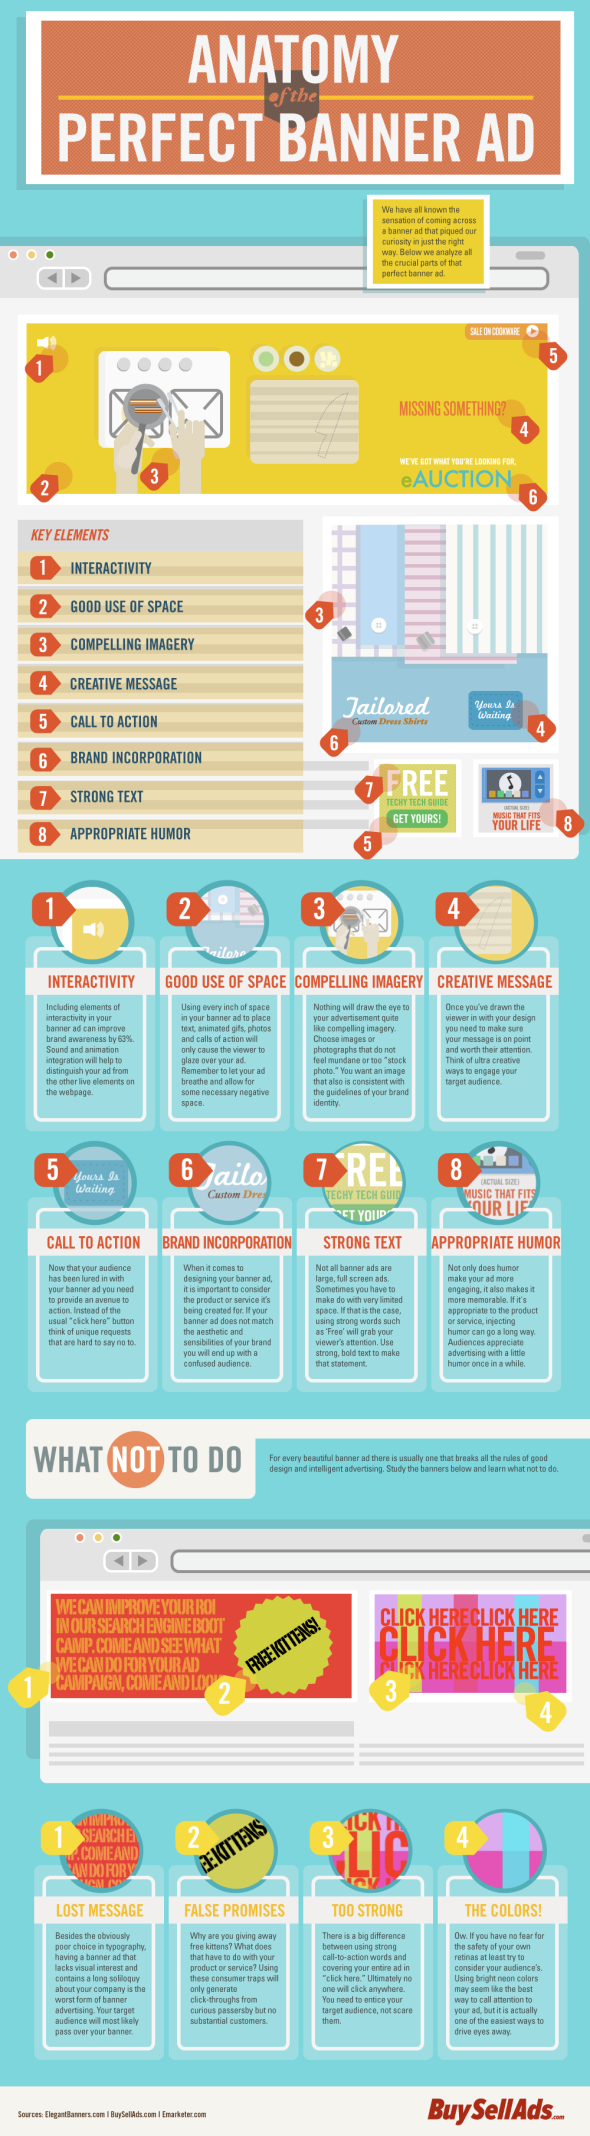 anatomy-of-a-perfect-web-banner-ads